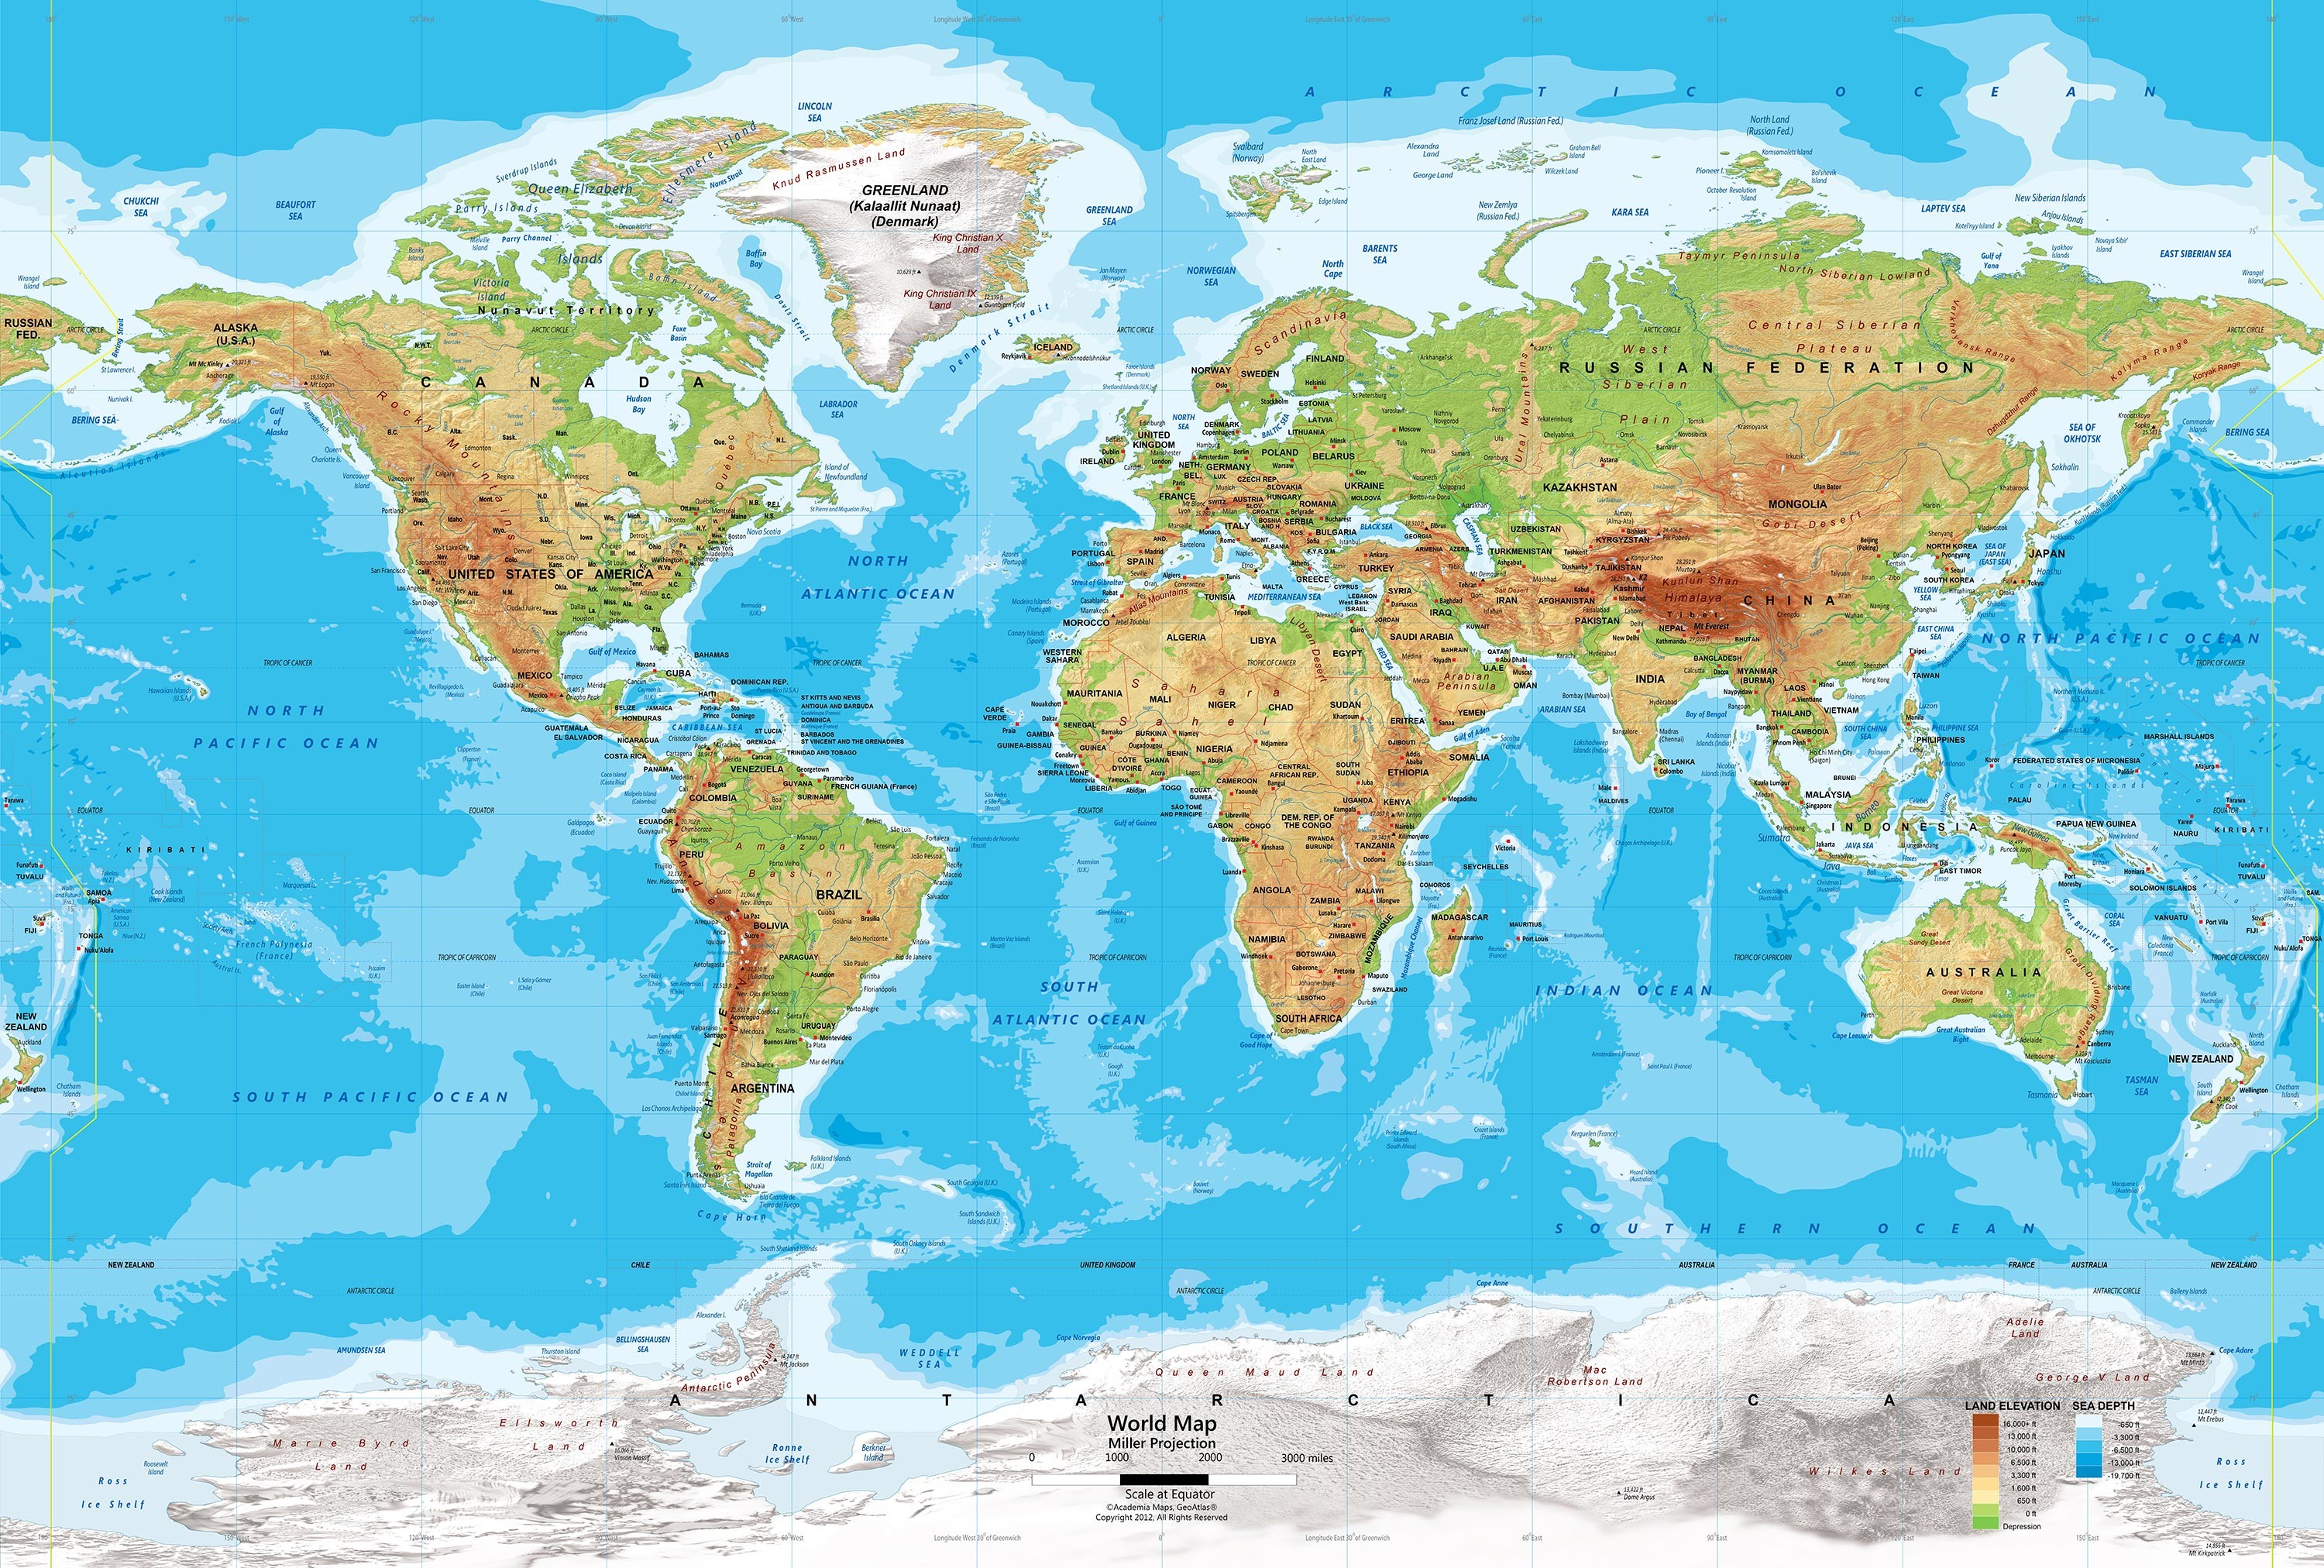 World map computer wallpaper 62 images World map wallpaper